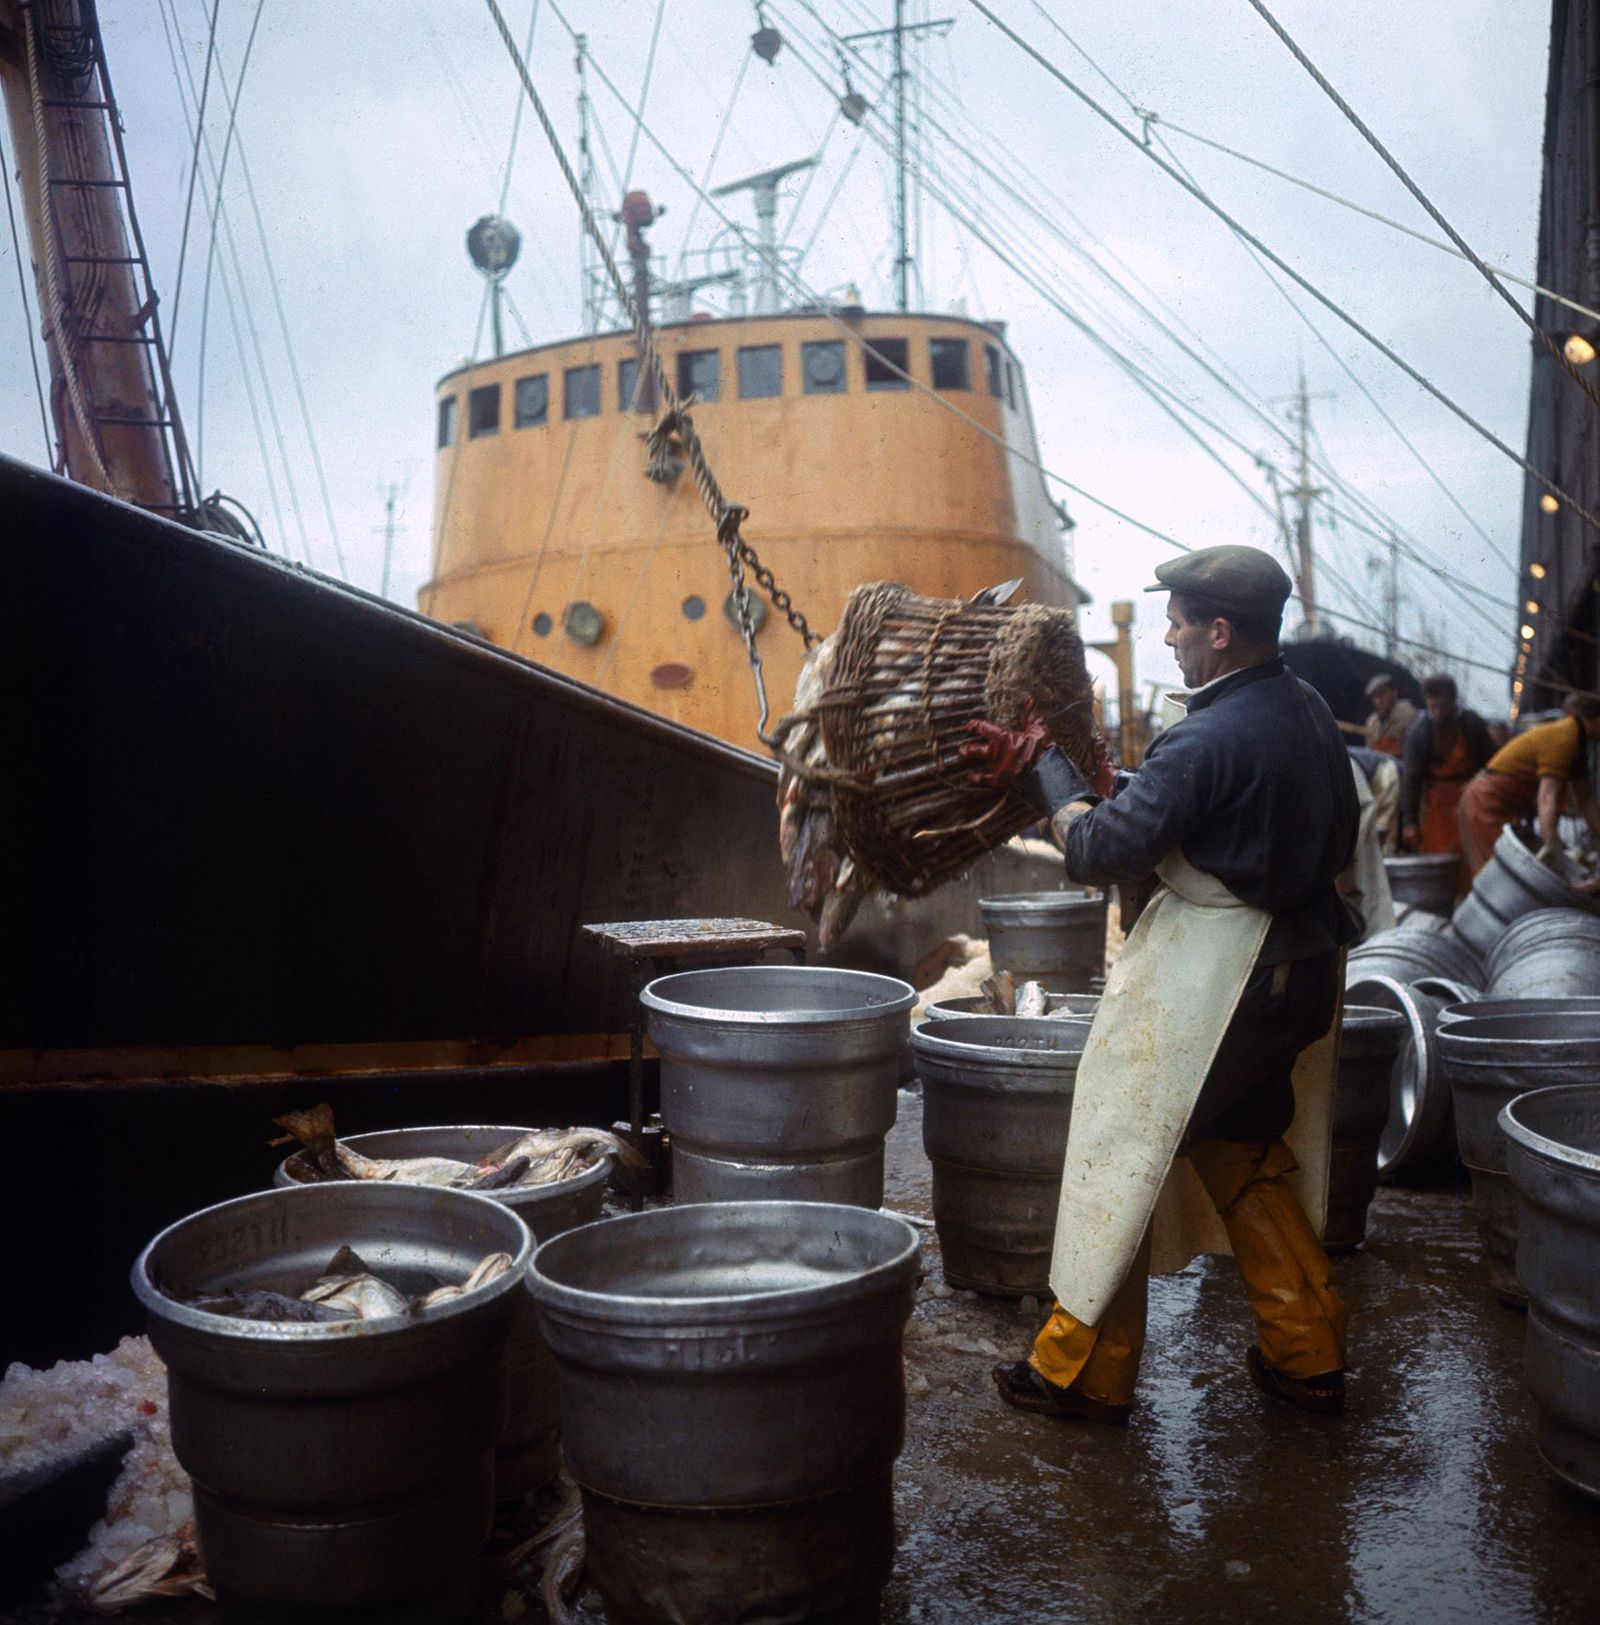 The Trawler Rose Orion returns to Hull with it's catch after a trip to Greenland, with fishermen sorting catch . July 19